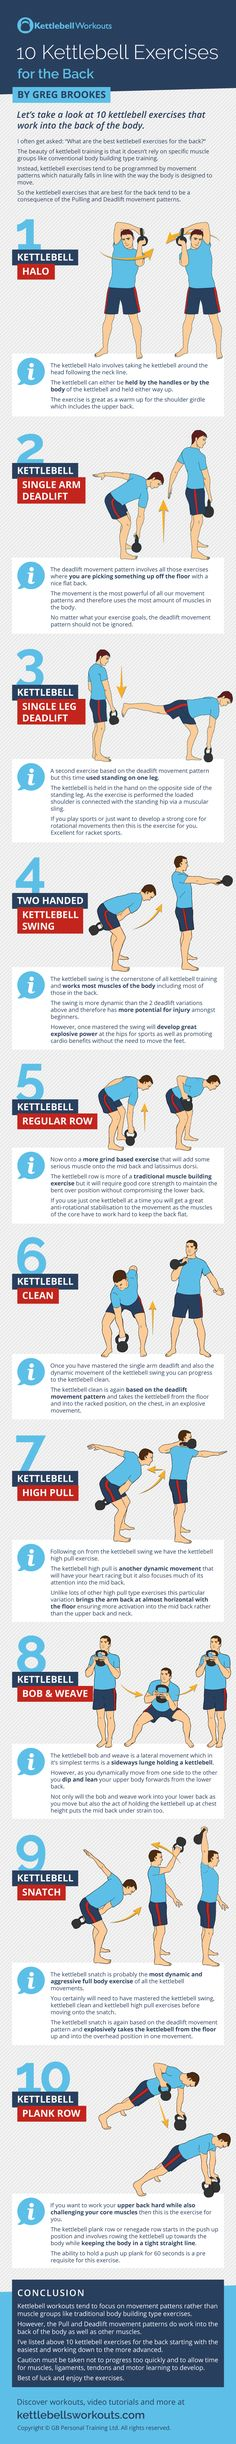 10 Kettlebell Exercises for the Back Are you looking to exercise the back of your body with a kettlebell? If so then these 10 kettlebell exercise are for you. Kettlebell Back Exercises, Kettlebell Circuit, Kettlebell Training, Kettlebell Swings, Circuit Training, Workout Exercises, Mental Training, Strength Training, Hiit Abs